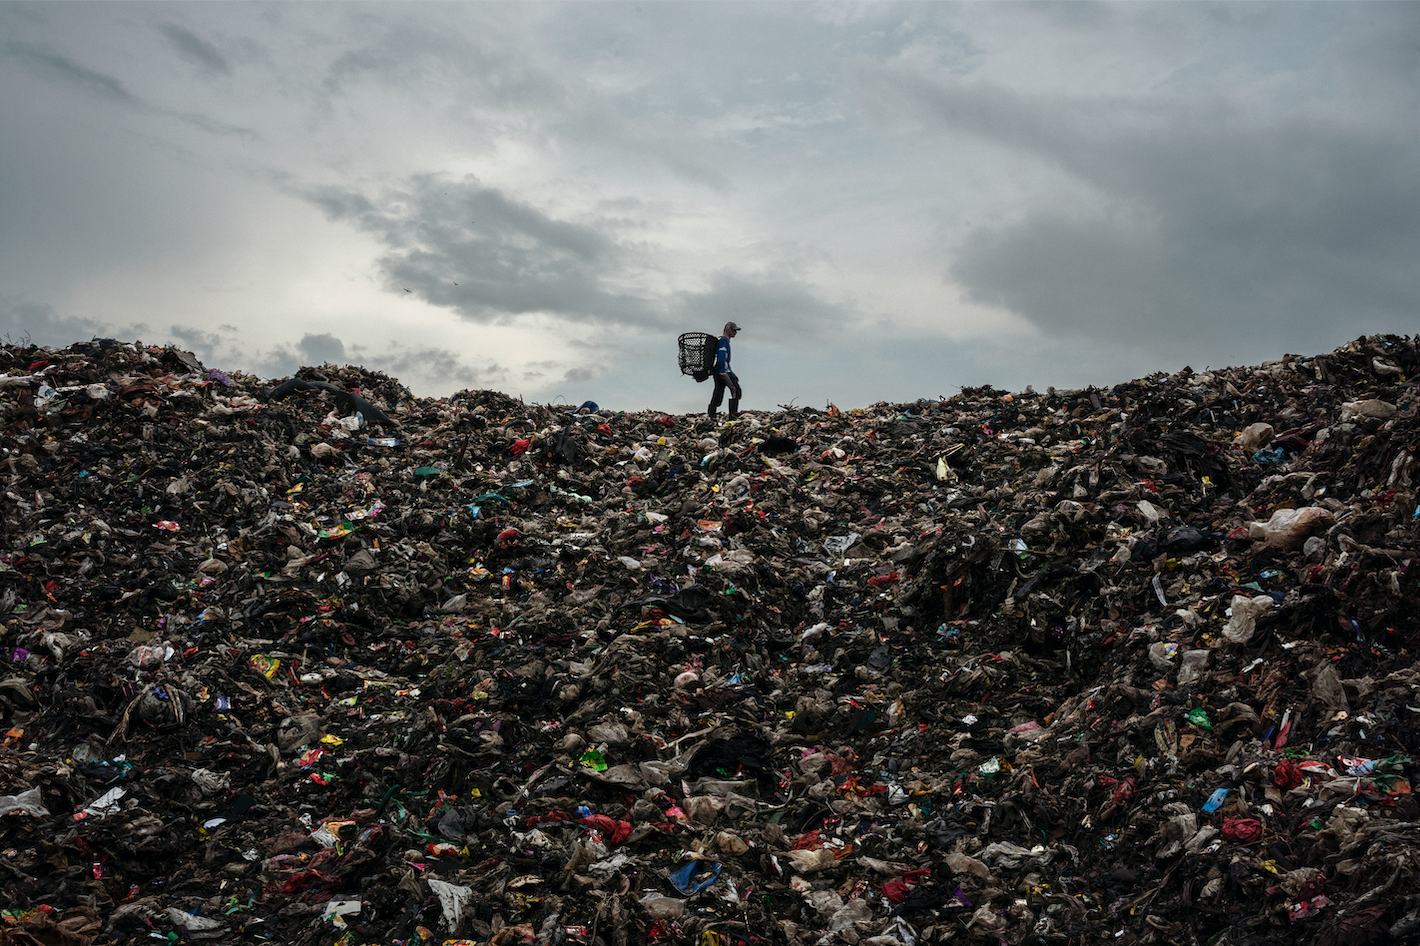 man-walks-on-top-of-rubbish-pile